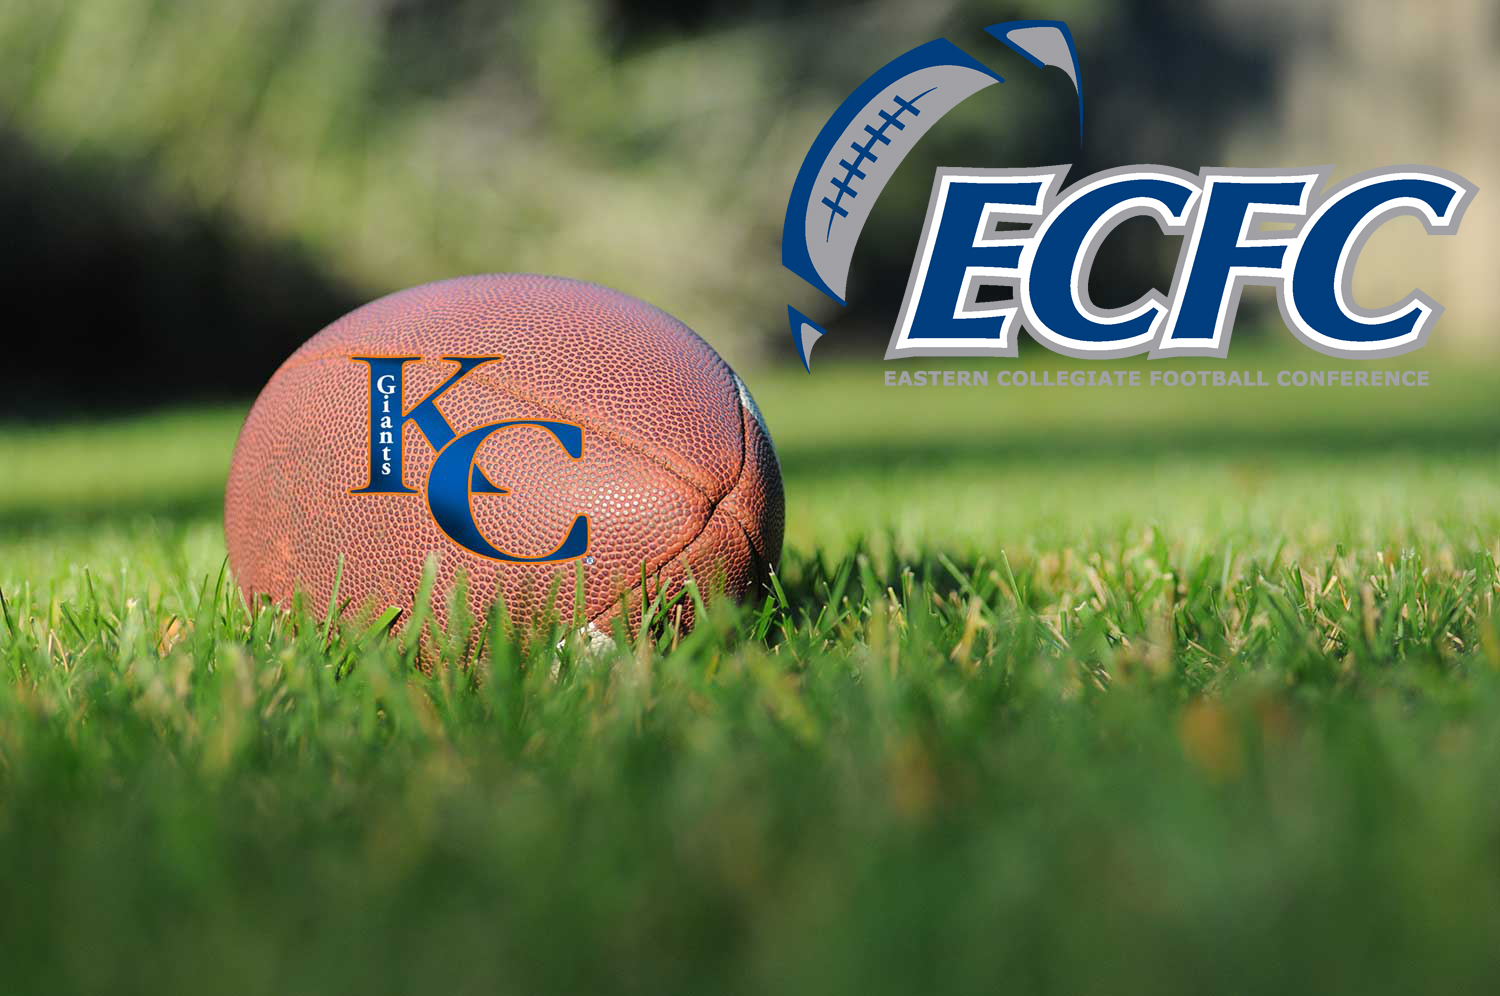 Keystone College Named as ECFC's Newest Member